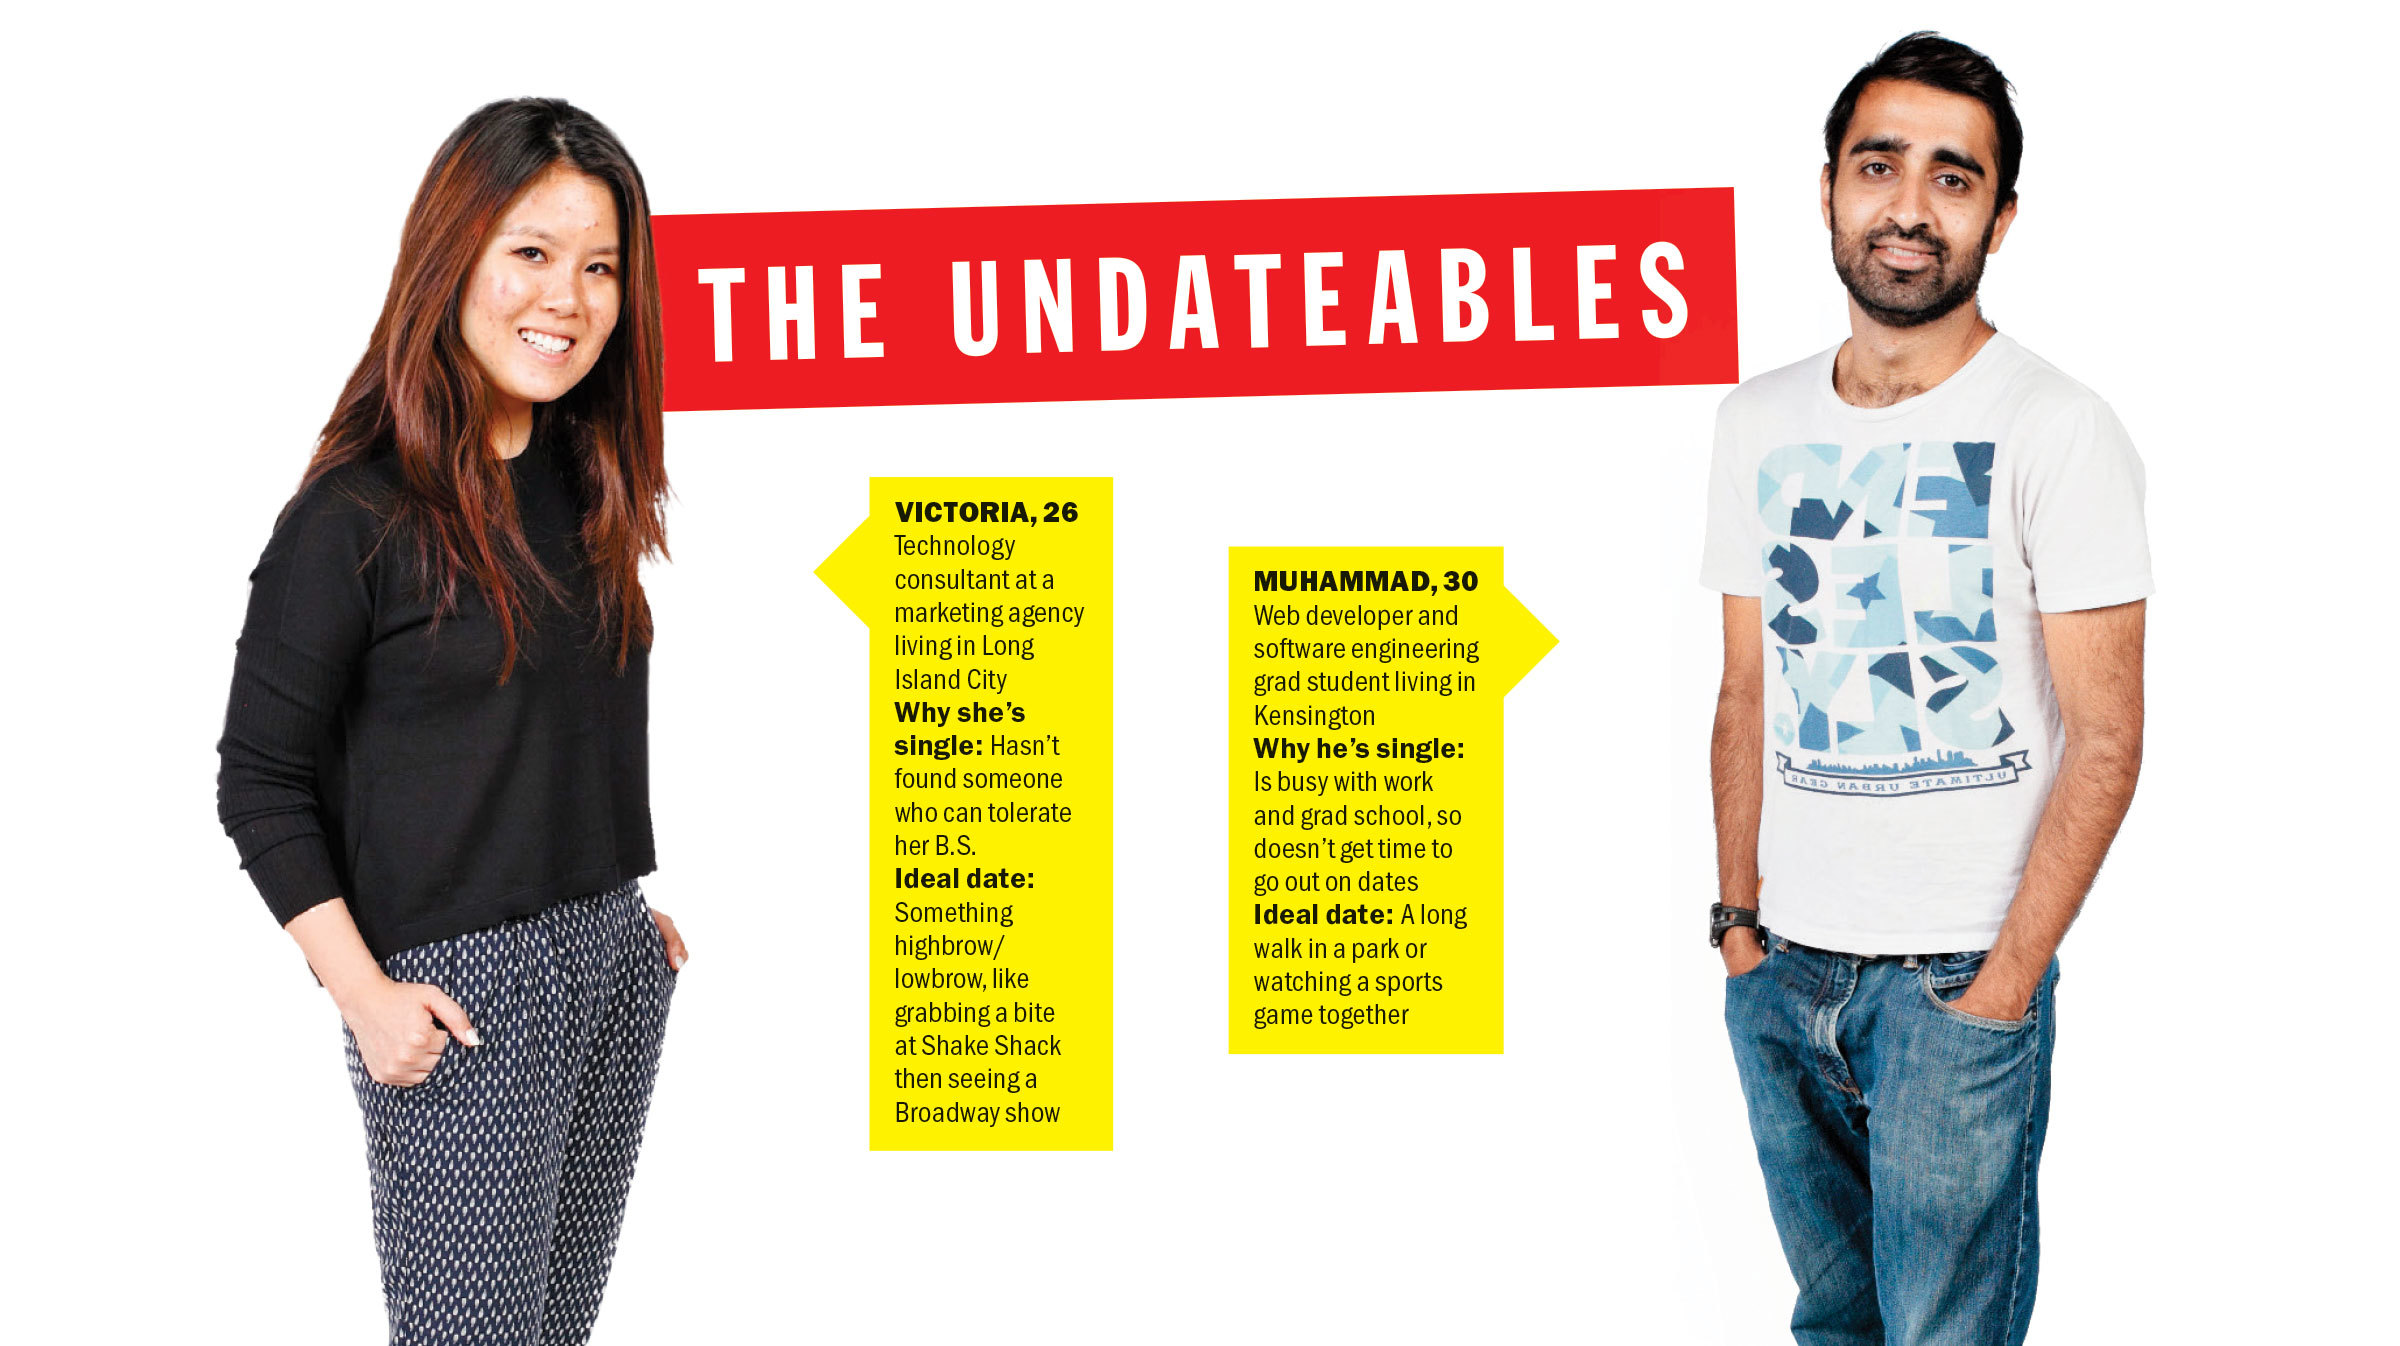 What hookup agency do the undateables use